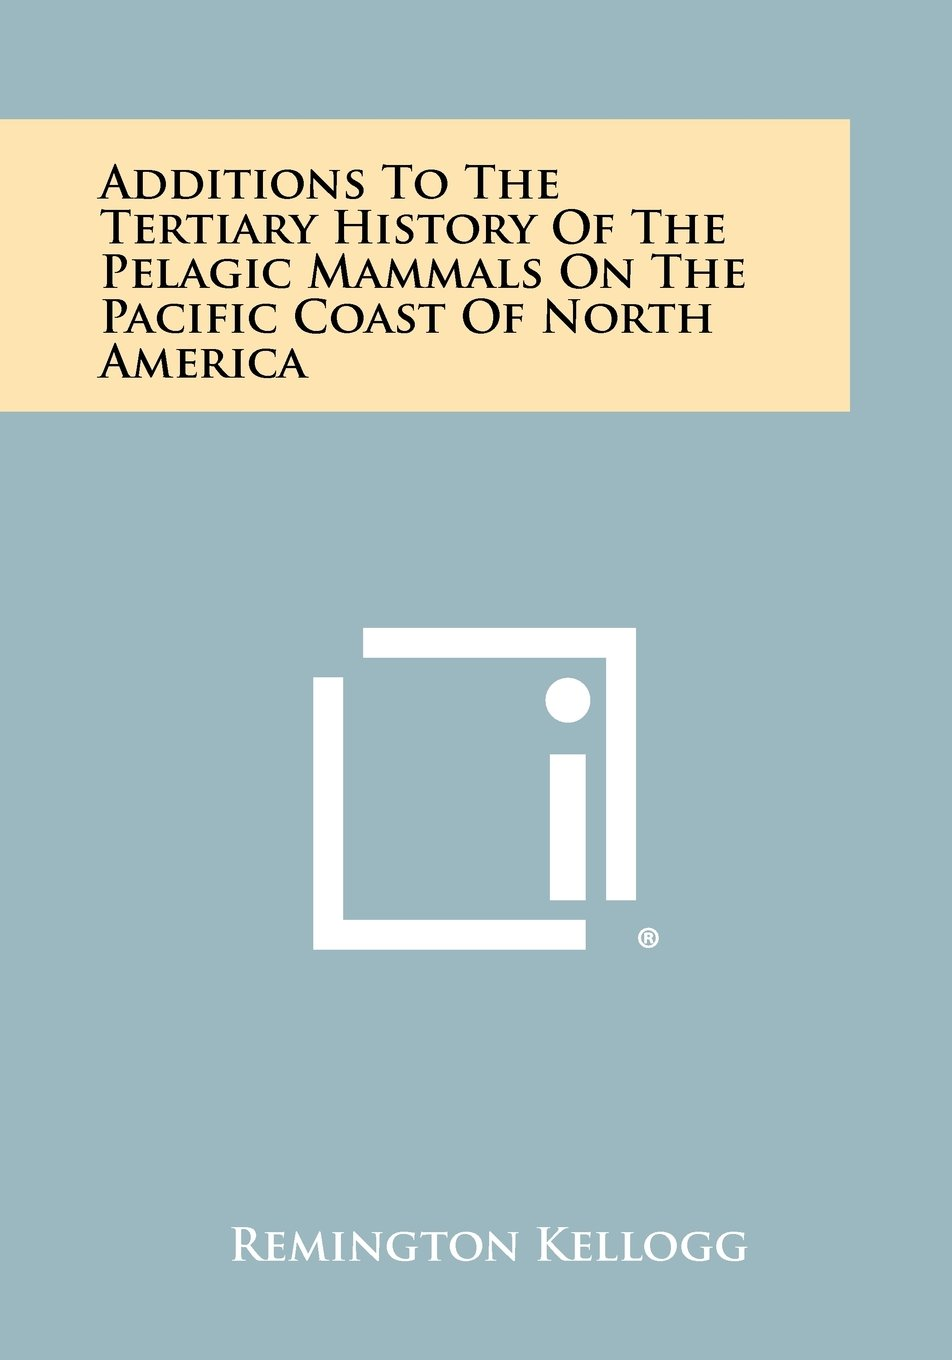 Download Additions To The Tertiary History Of The Pelagic Mammals On The Pacific Coast Of North America pdf